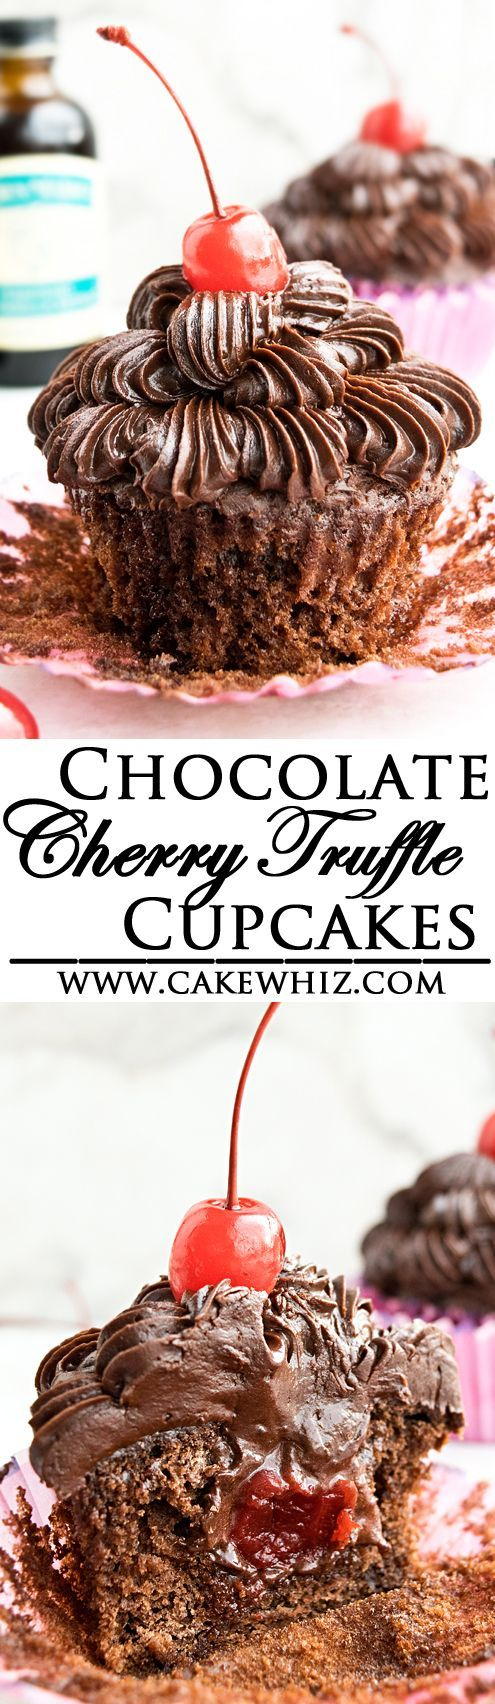 These soft and moist CHOCOLATE CHERRY CUPCAKES are made with maraschino cherries  They are stuffed with fudgy chocolate cherry truffles and also topped off with chocolate fudge frosting   Ad  From cakewhiz com